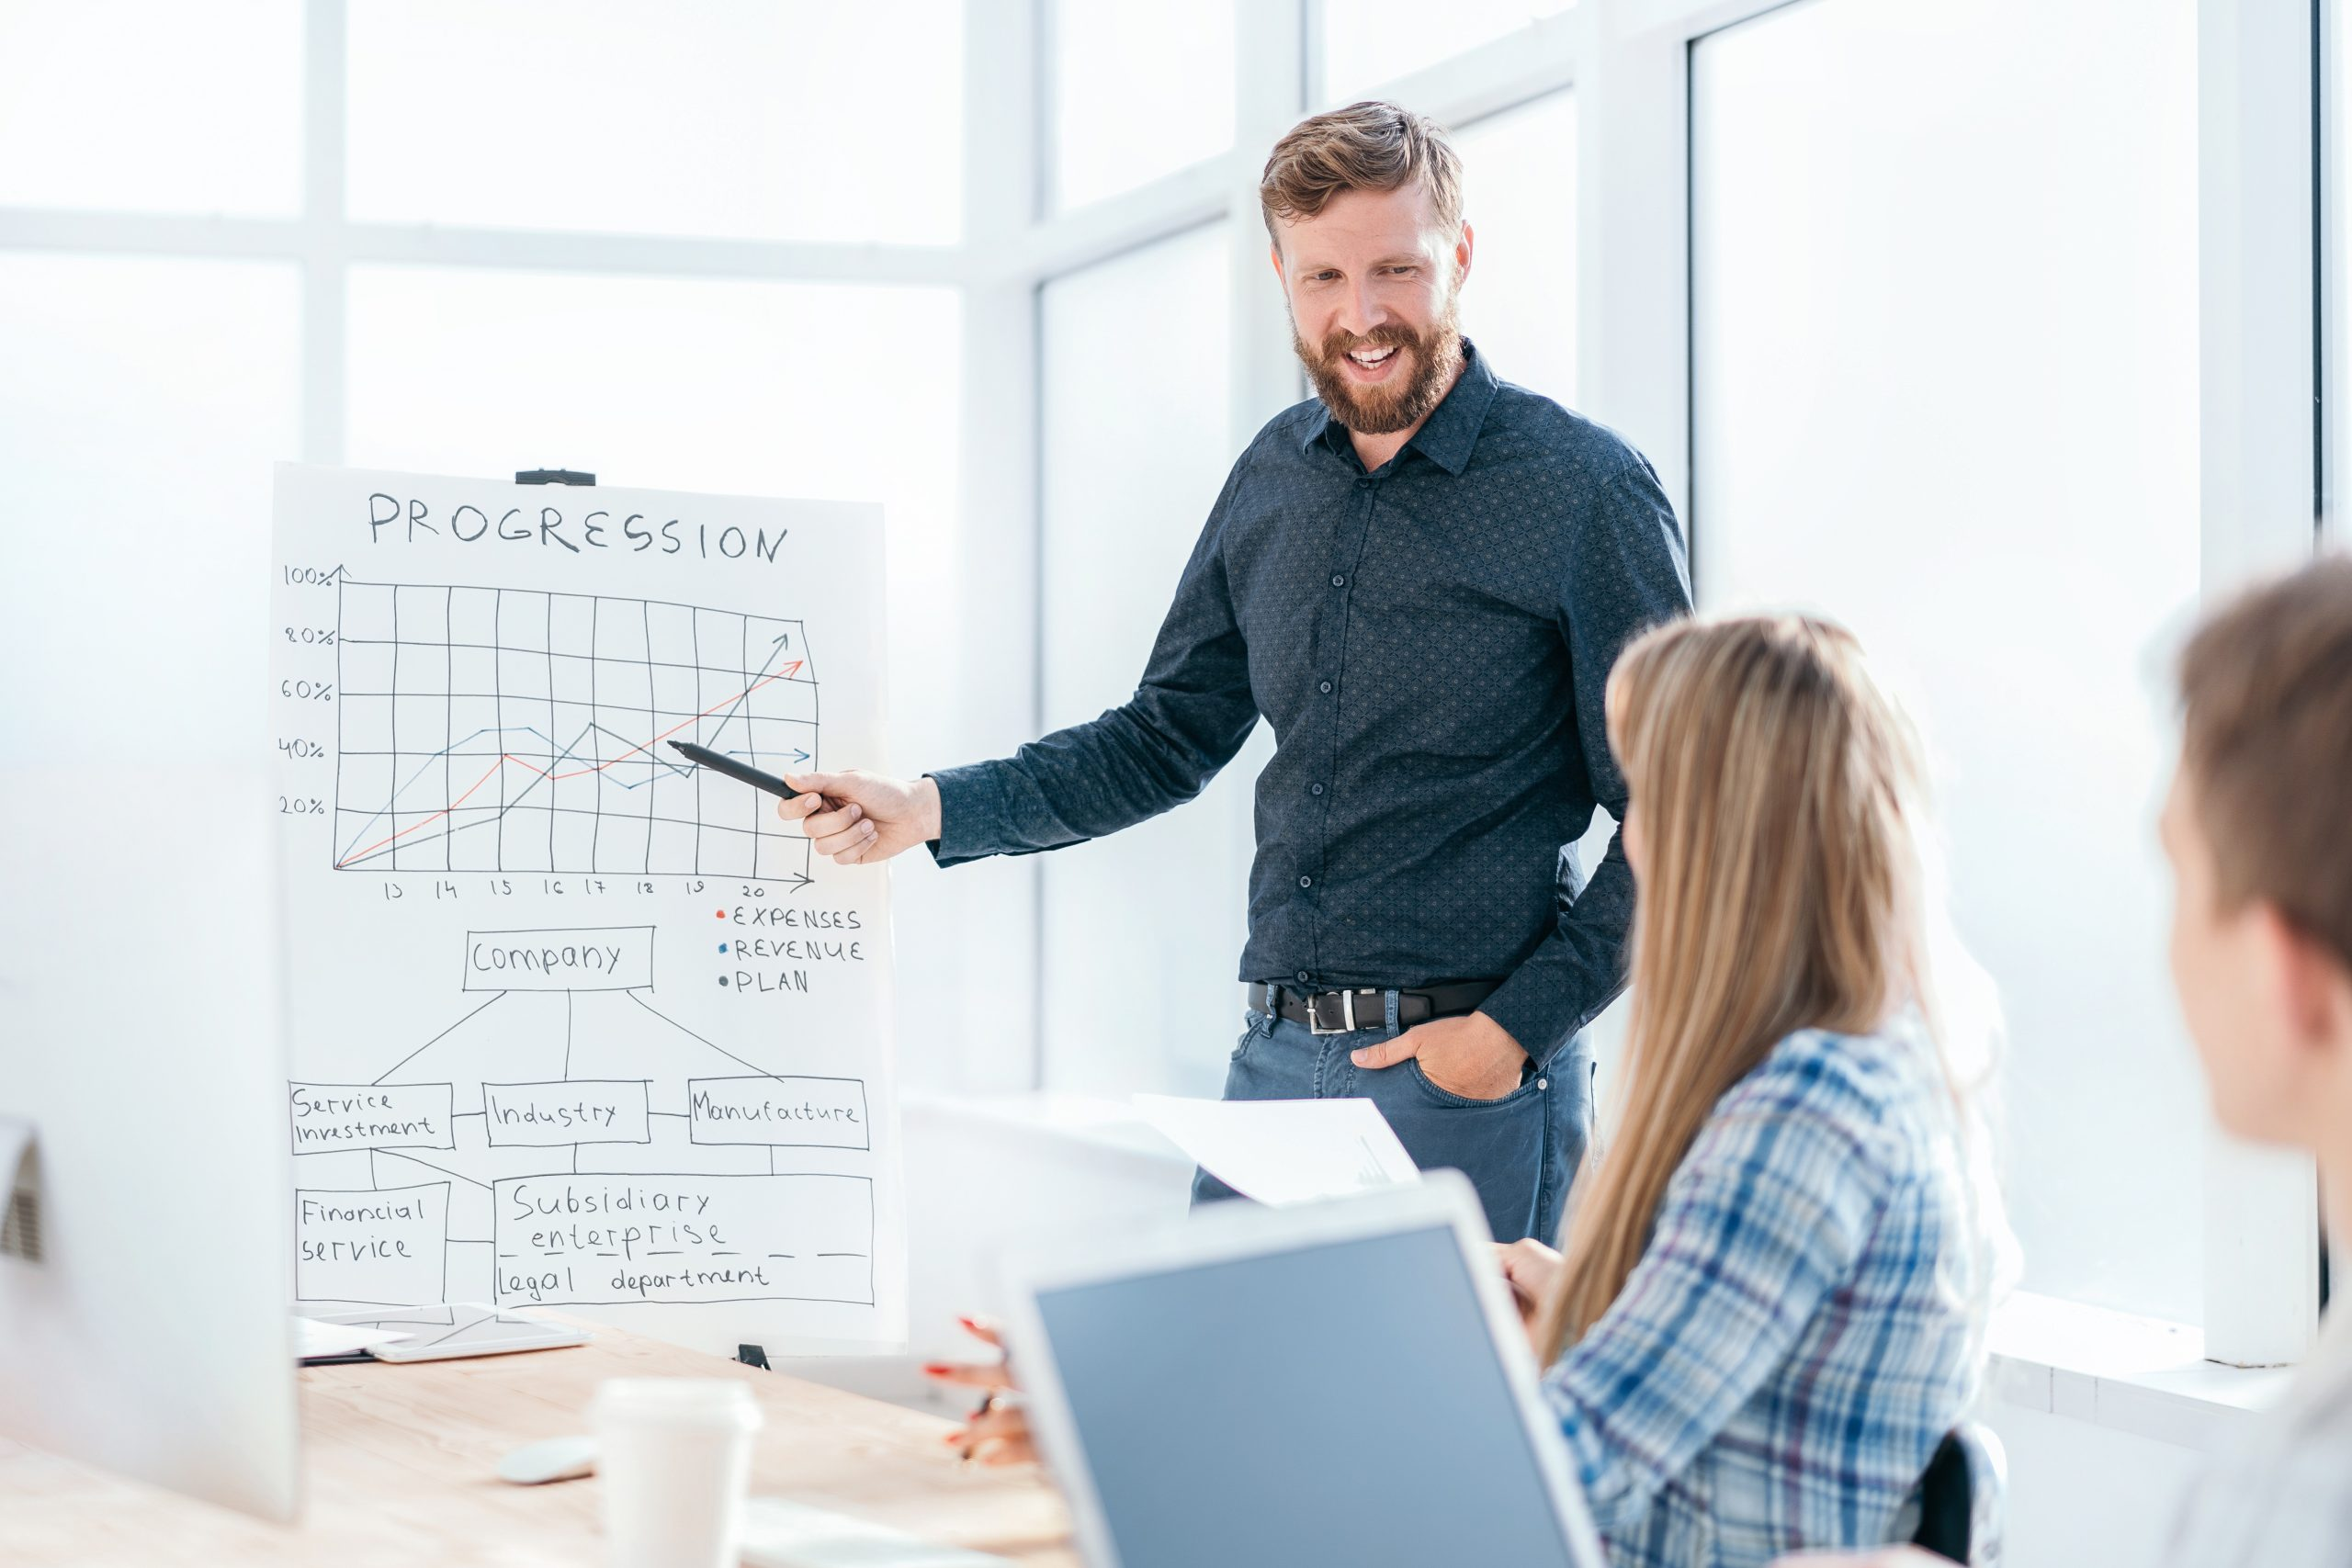 businessman pointing graph during business presentation scaled